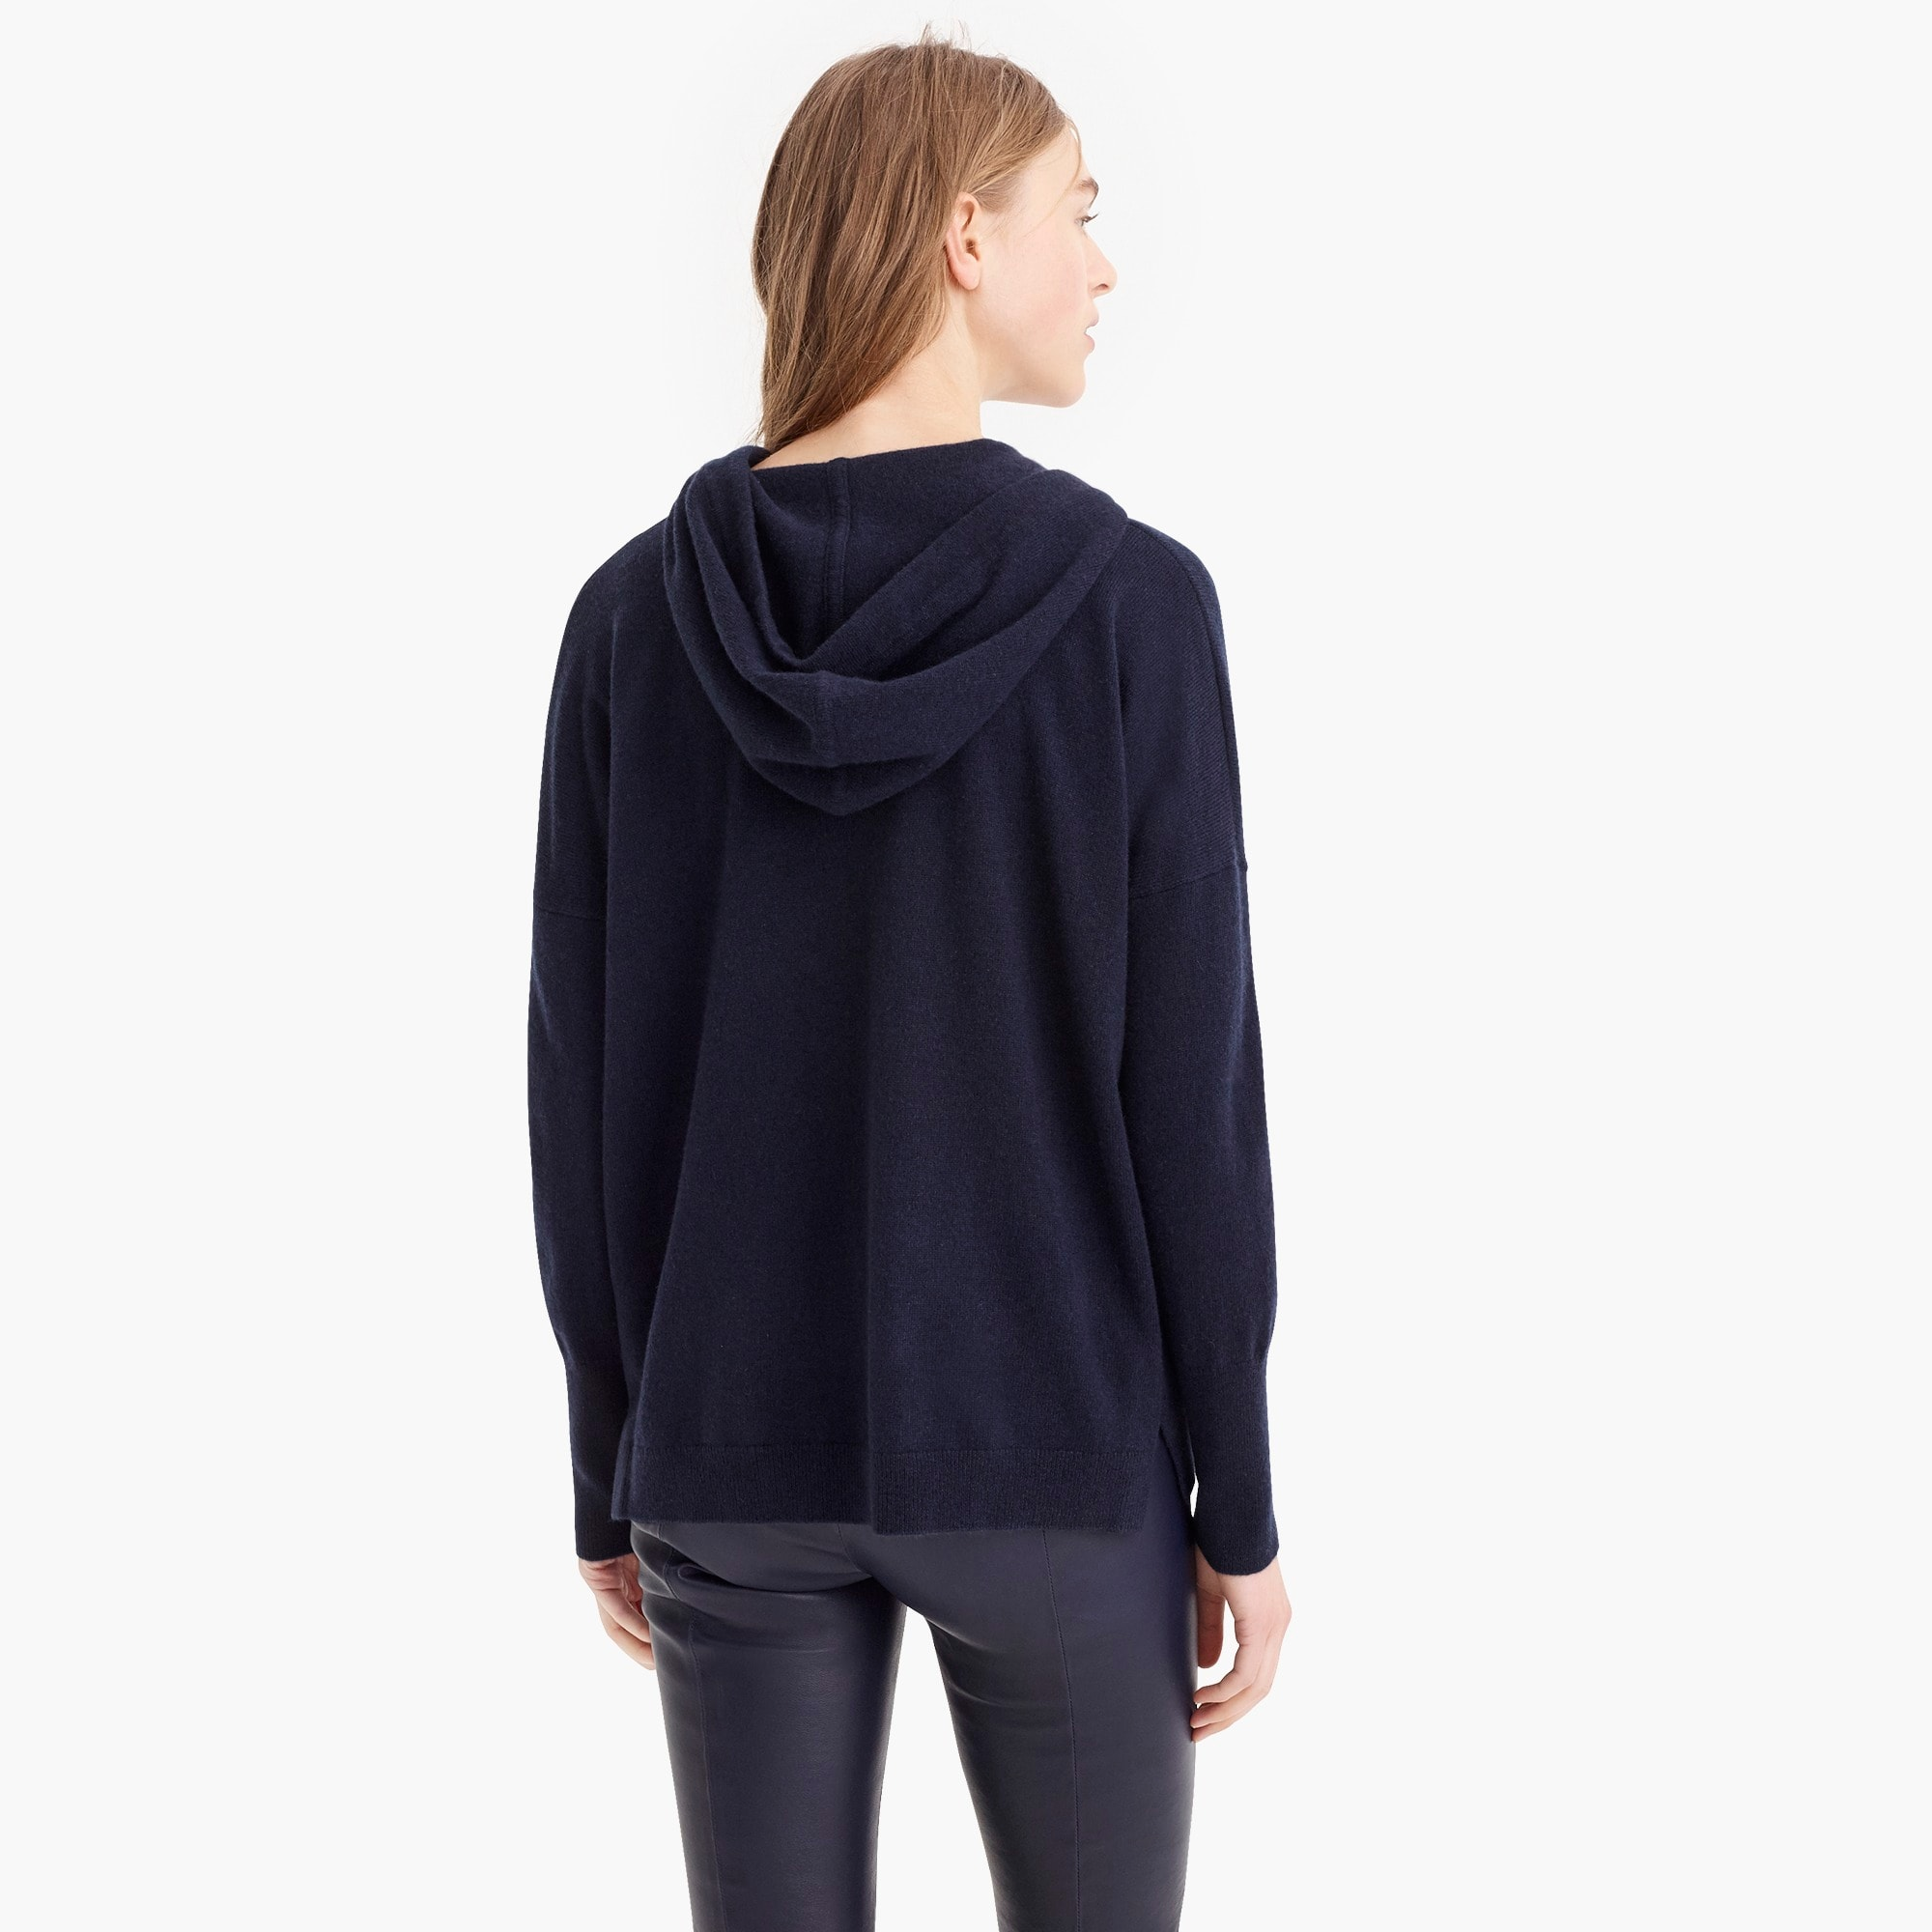 Image 5 for Everyday cashmere pullover hoodie sweater